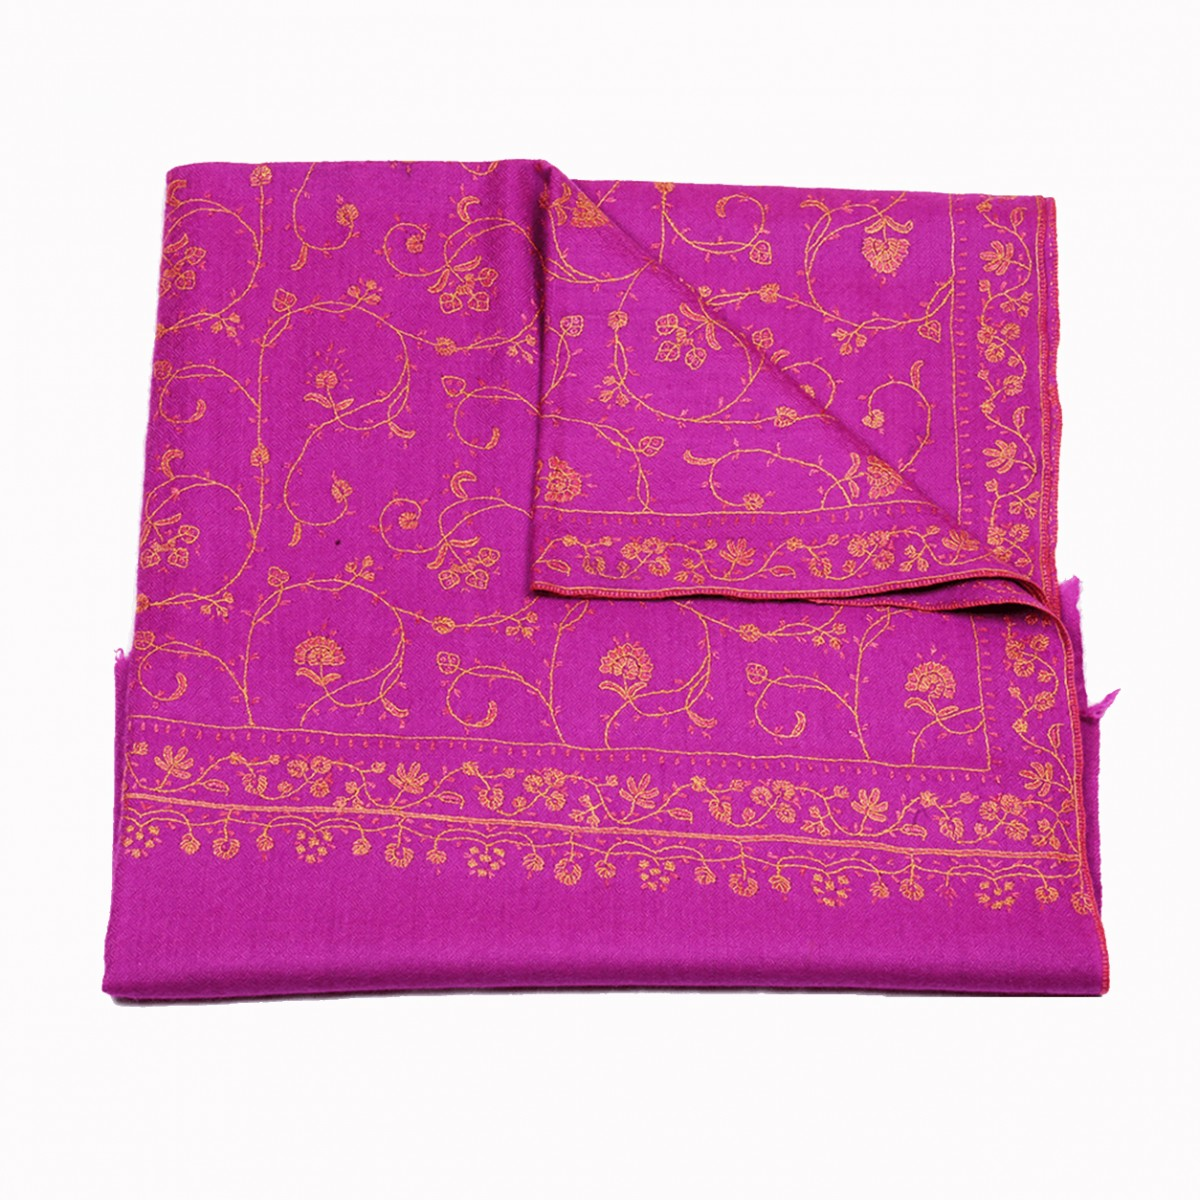 Embroidery handloom pashmina-orchid